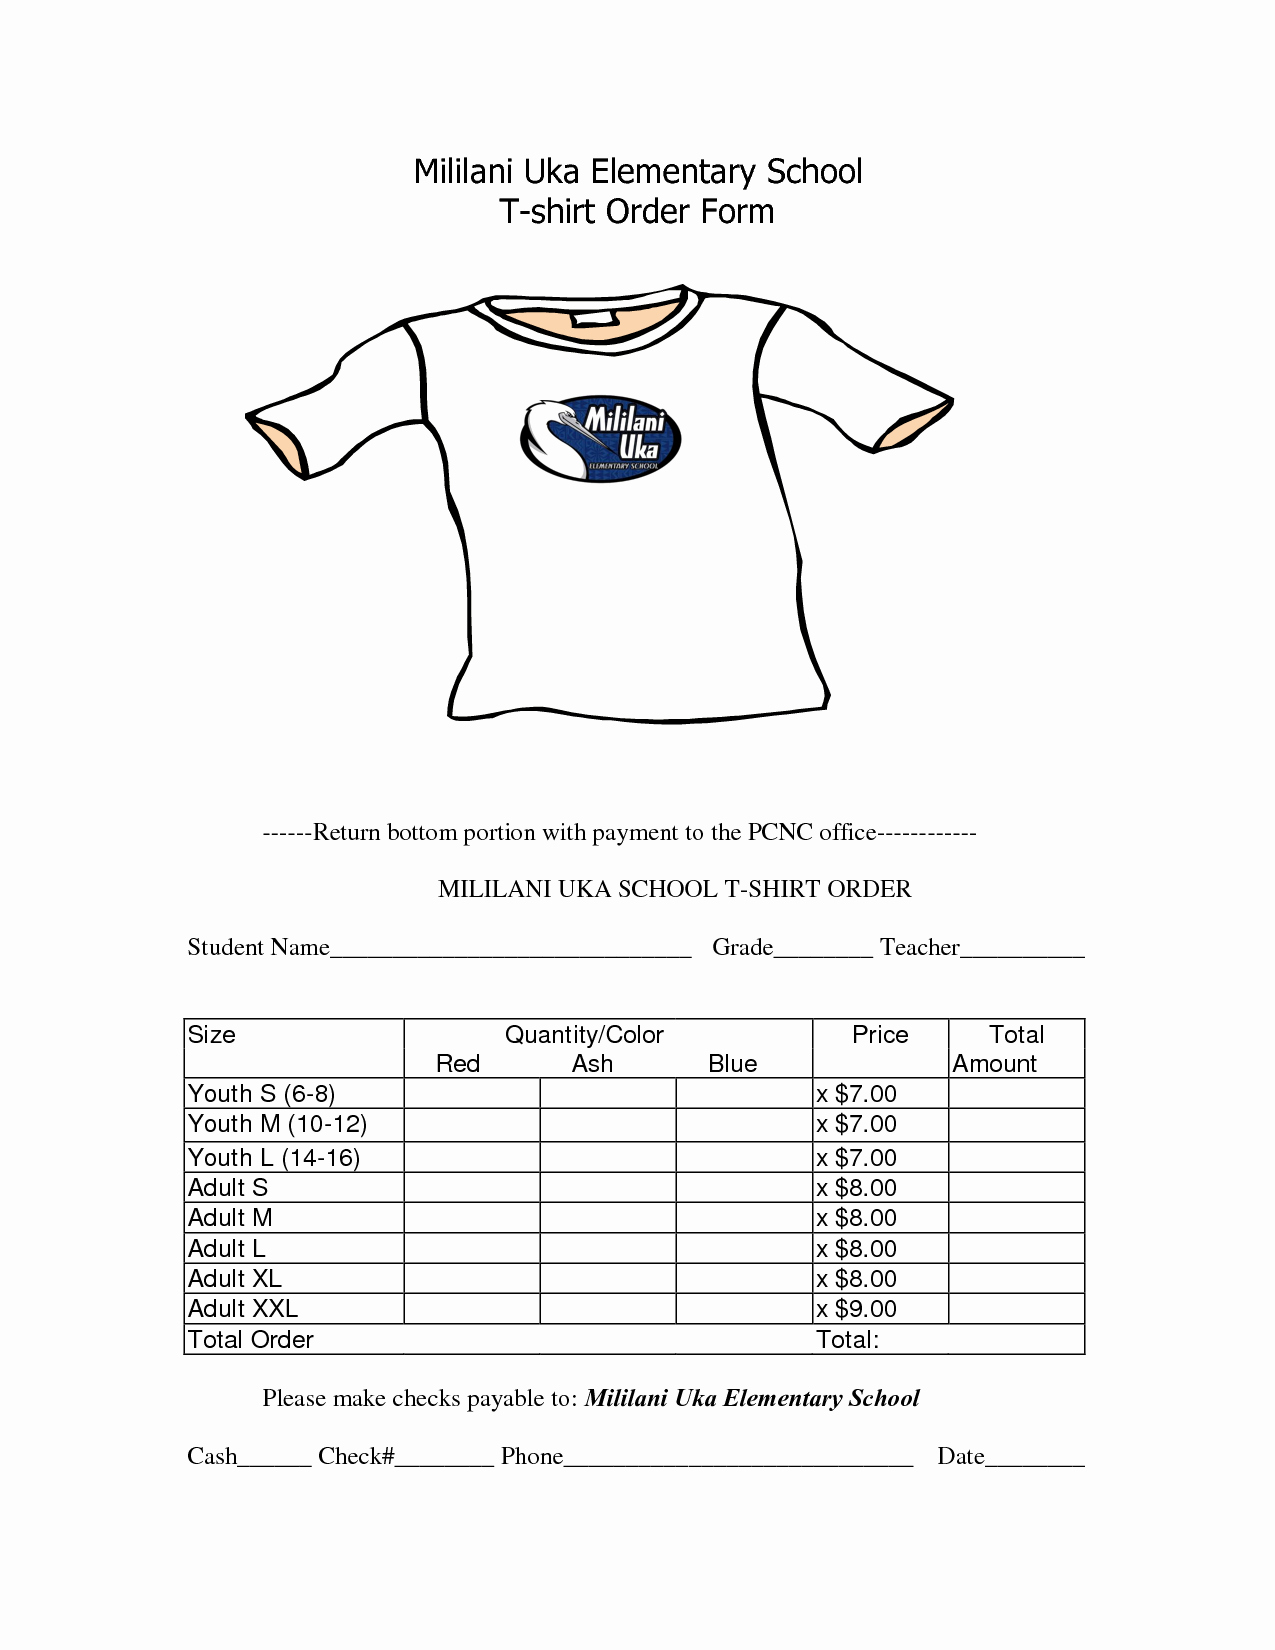 Shirt order form Templates Awesome School T Shirt order form Template Awana